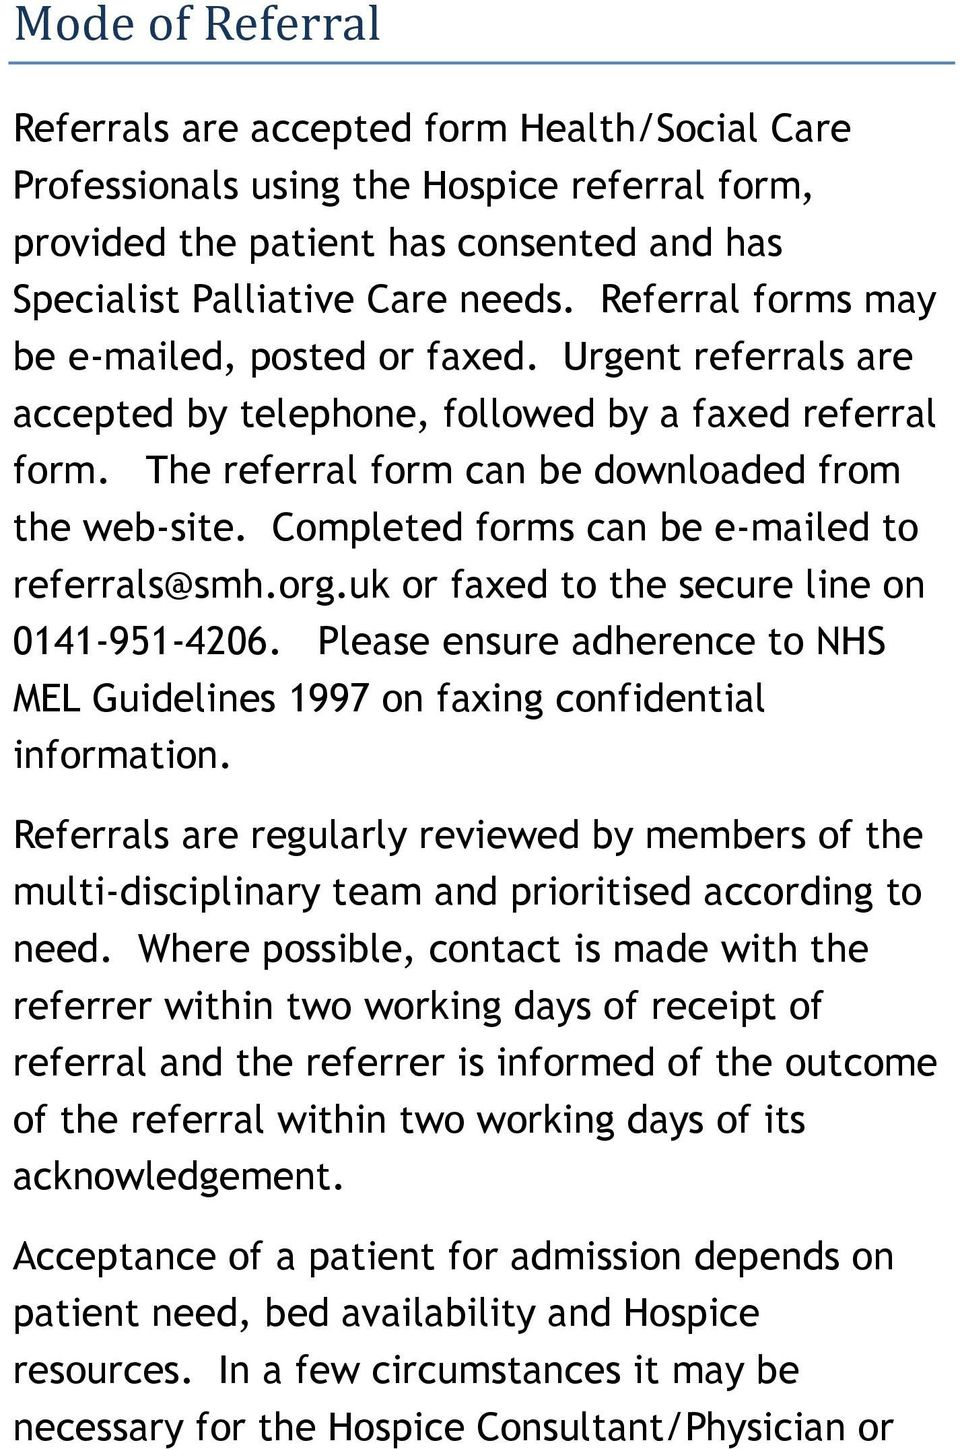 Completed forms can be e-mailed to referrals@smh.org.uk or faxed to the secure line on 0141-951-4206. Please ensure adherence to NHS MEL Guidelines 1997 on faxing confidential information.